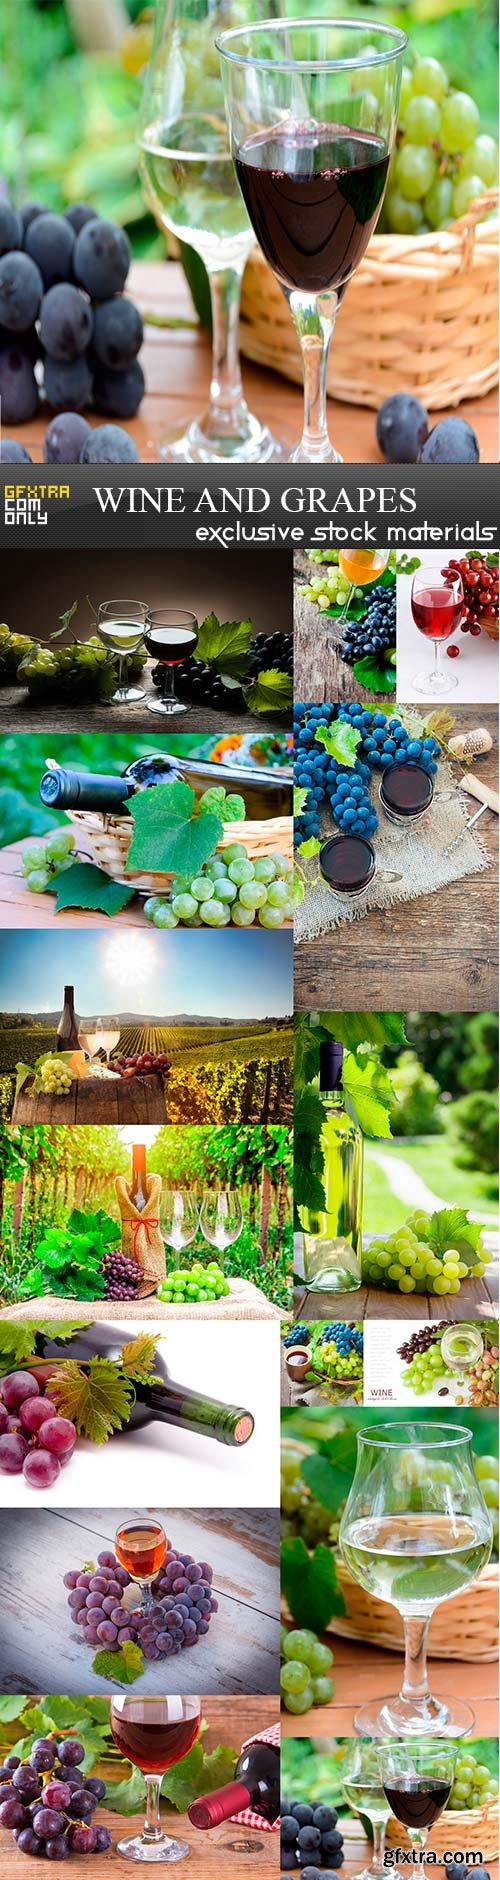 Wine and grapes, 15 x UHQ JPEG